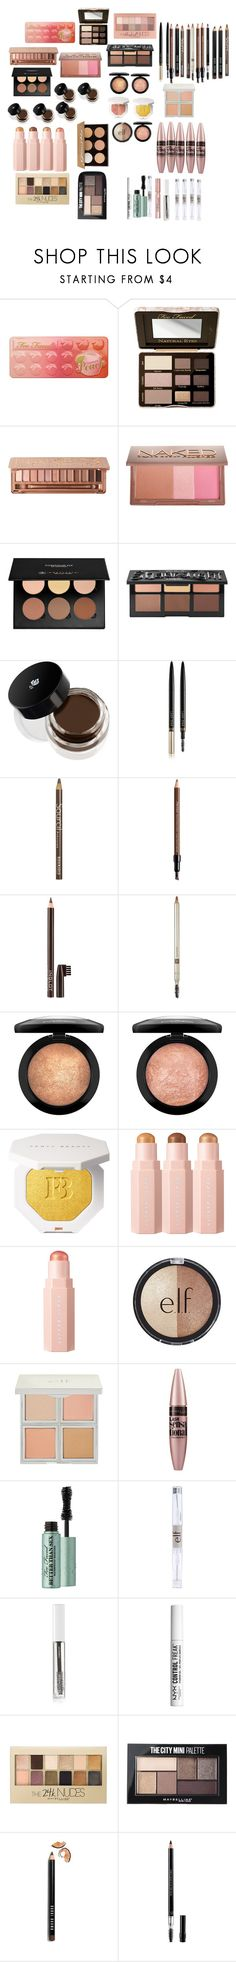 """""""makeup b"""" by cuteoutfits4you on Polyvore featuring Too Faced Cosmetics, Urban Decay, Maybelline, Anastasia Beverly Hills, Kat Von D, Lancôme, Lash Star Beauty, Bourjois, Shiseido and Inglot"""